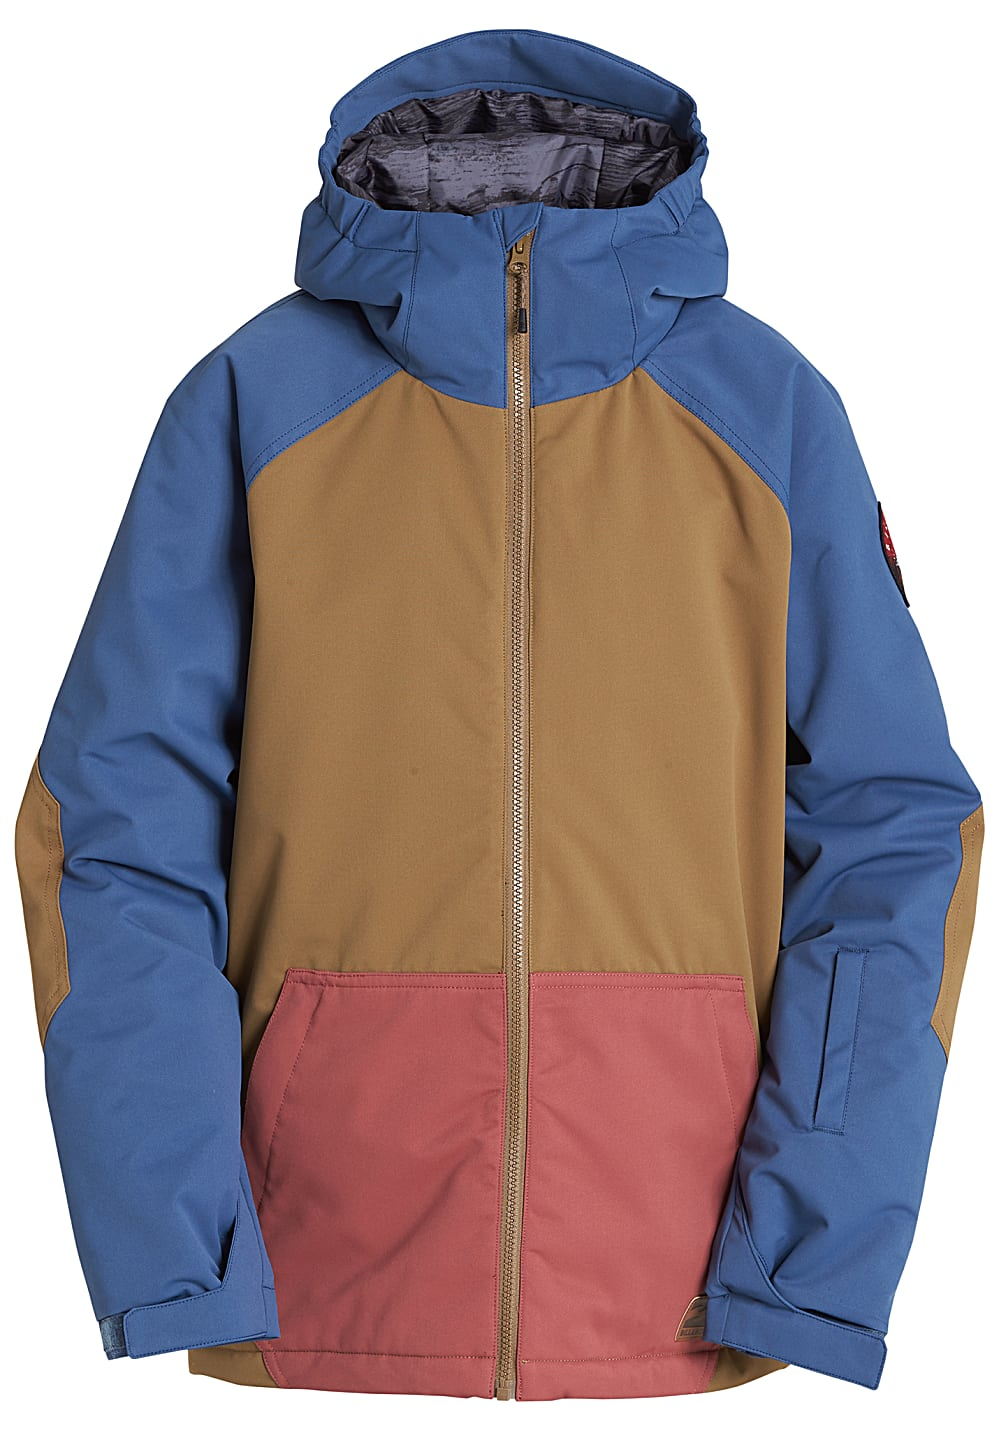 Boysregenwinter - BILLABONG All Day Snowboardjacke für Jungs Braun - Onlineshop Planet Sports